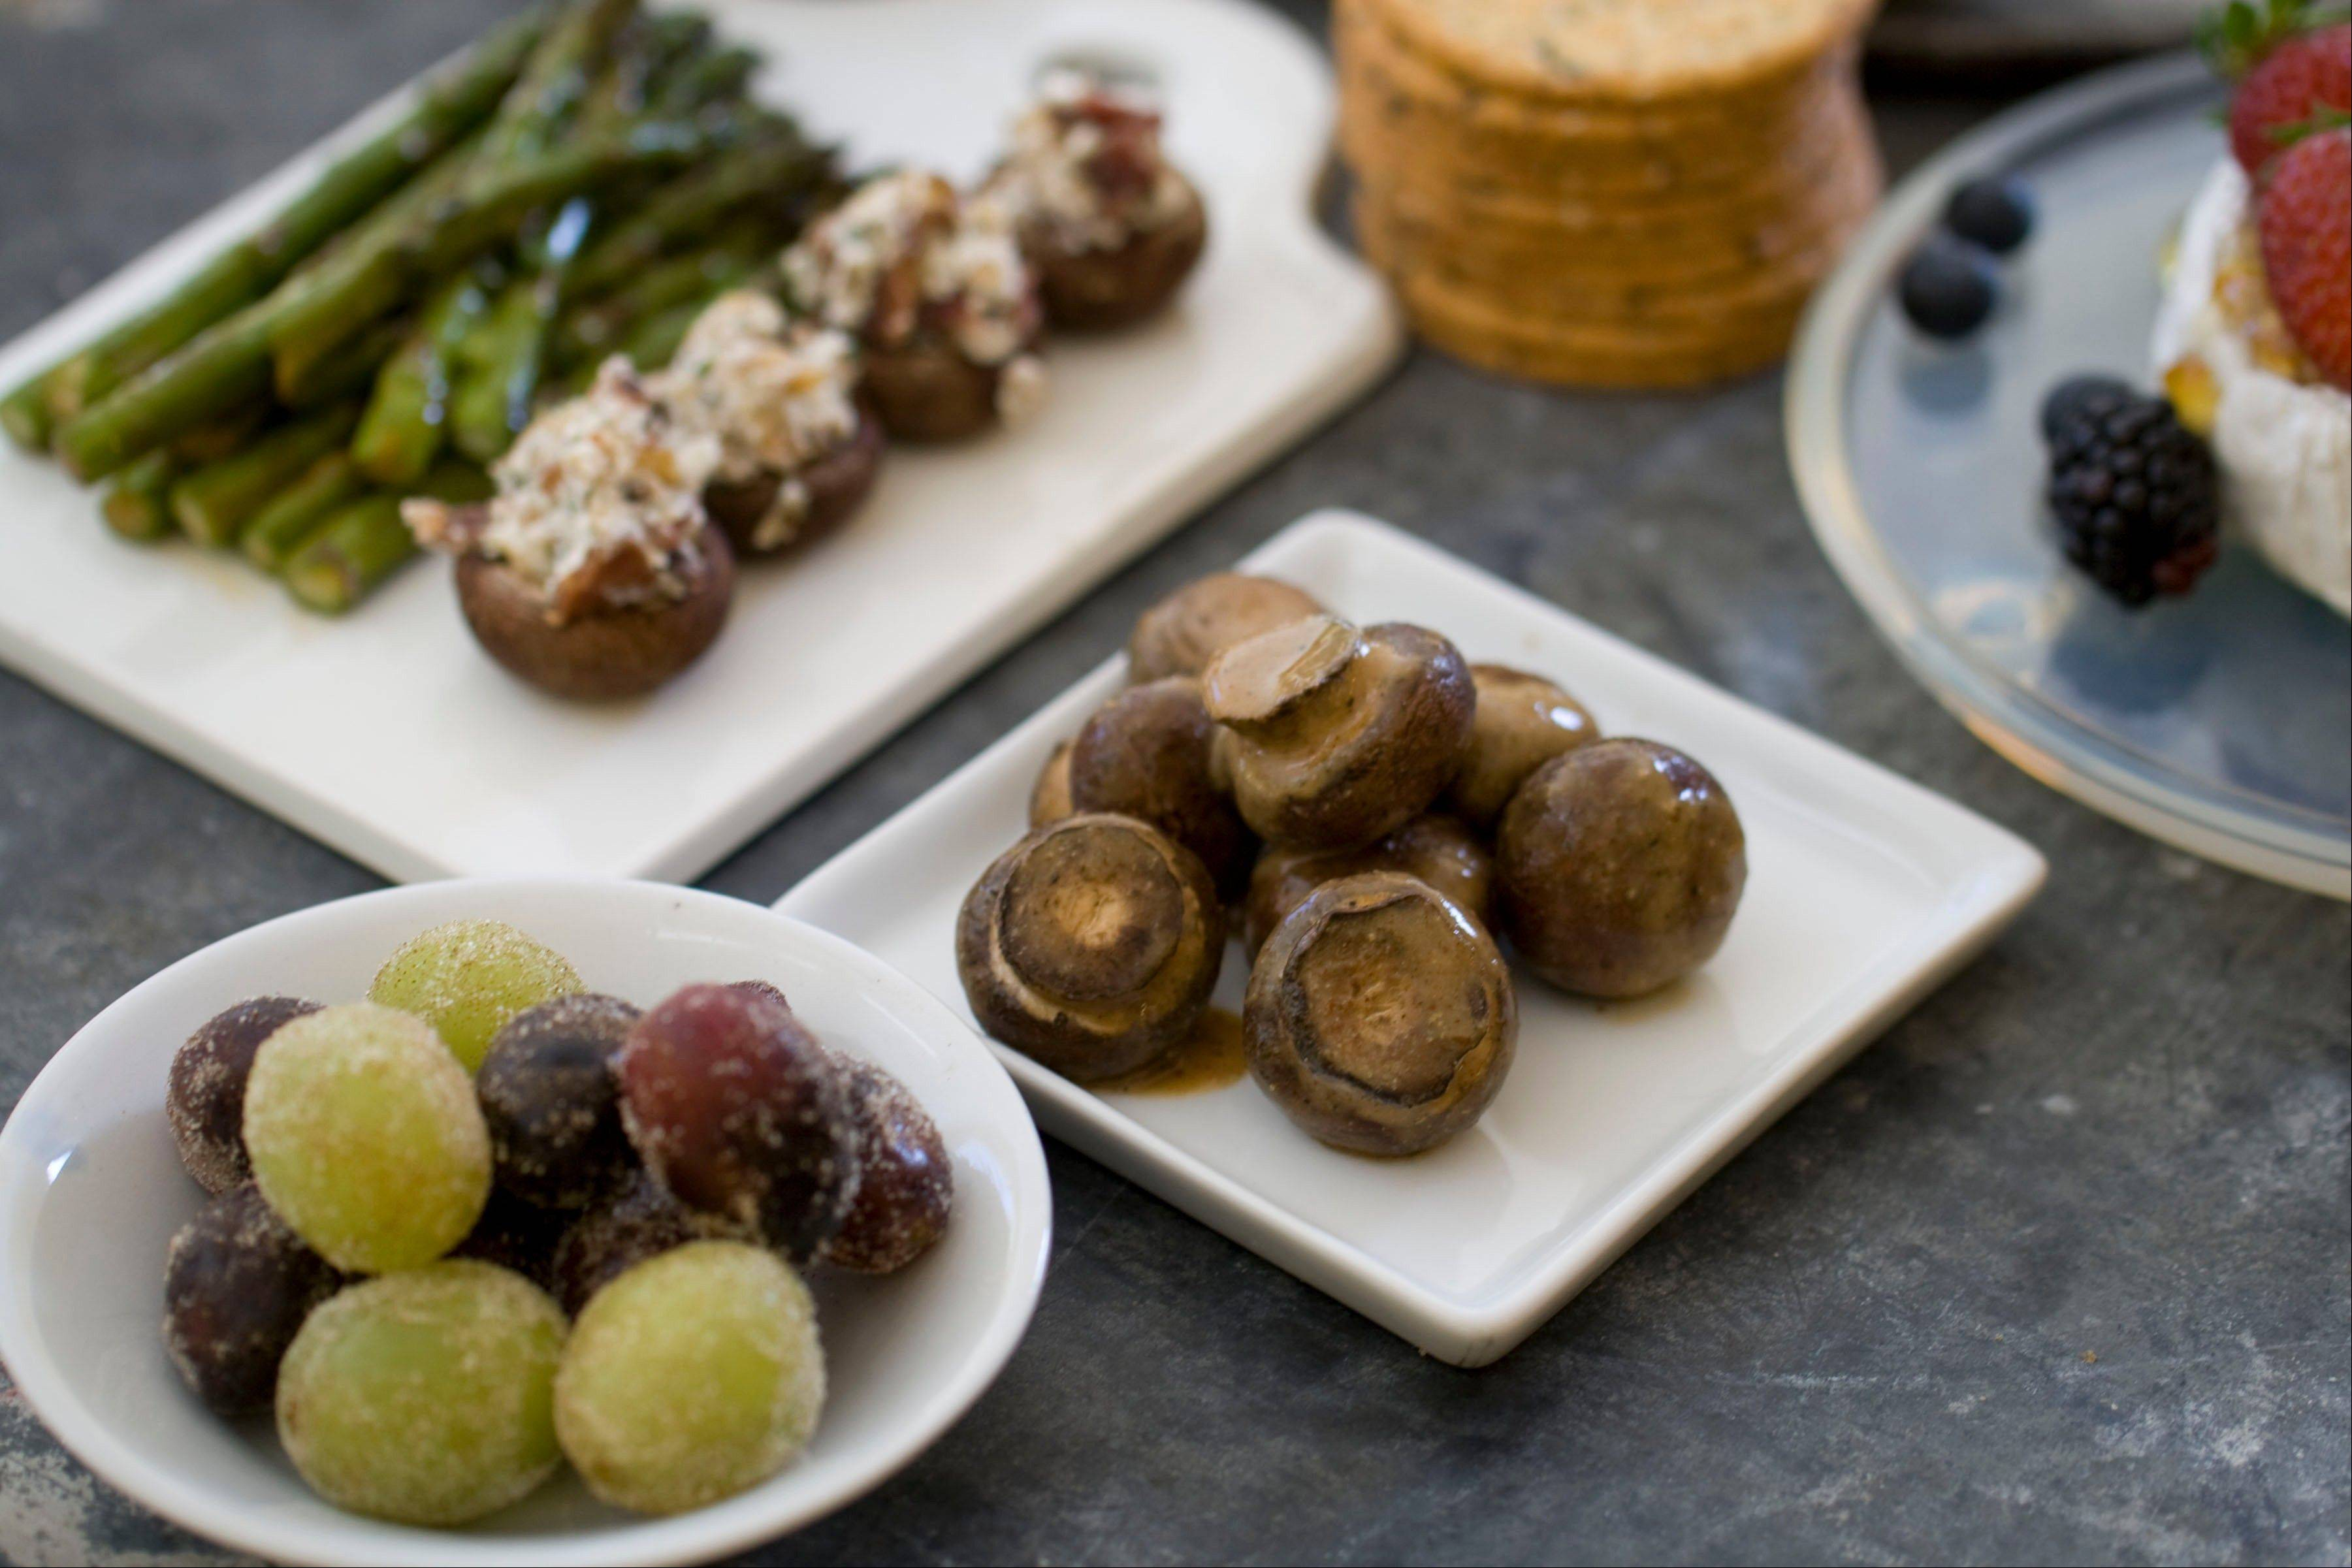 Sugared grapes, stuffed mushrooms, marinated mushrooms and baked asparagus take little time to prepare and make a big impression on holiday guests.